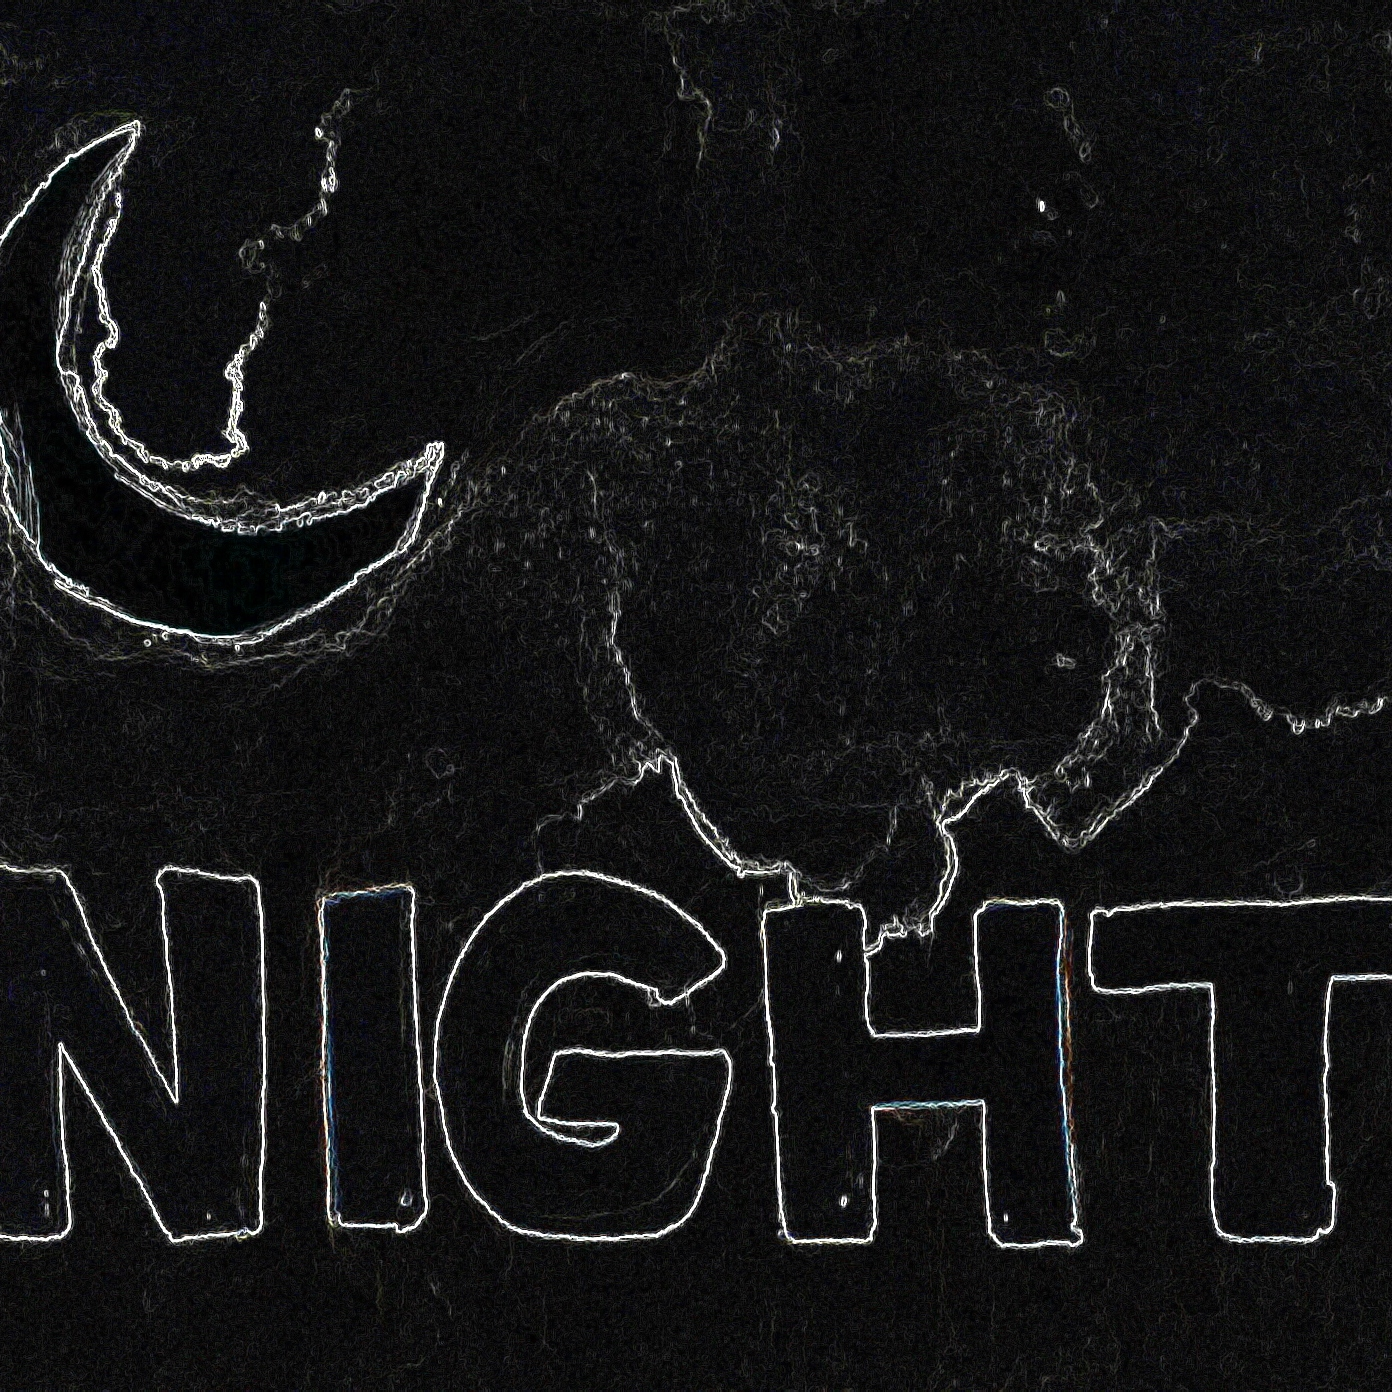 Night Book Cover Ideas : Free night by elie wiesel music playlists tracks radio